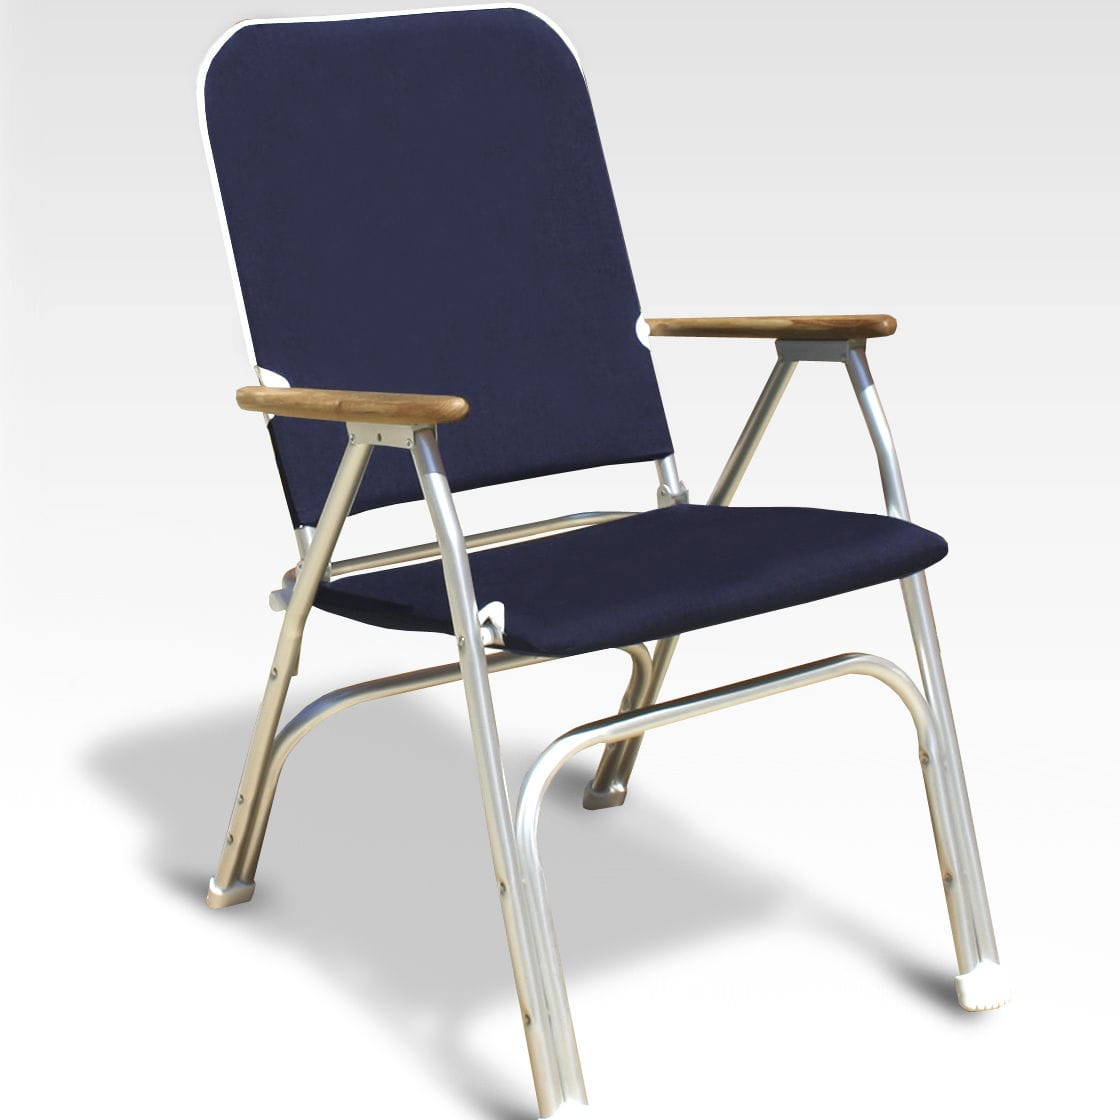 Beau Standard Boat Chair / For Yachts / With Armrests / Folding   V100NB